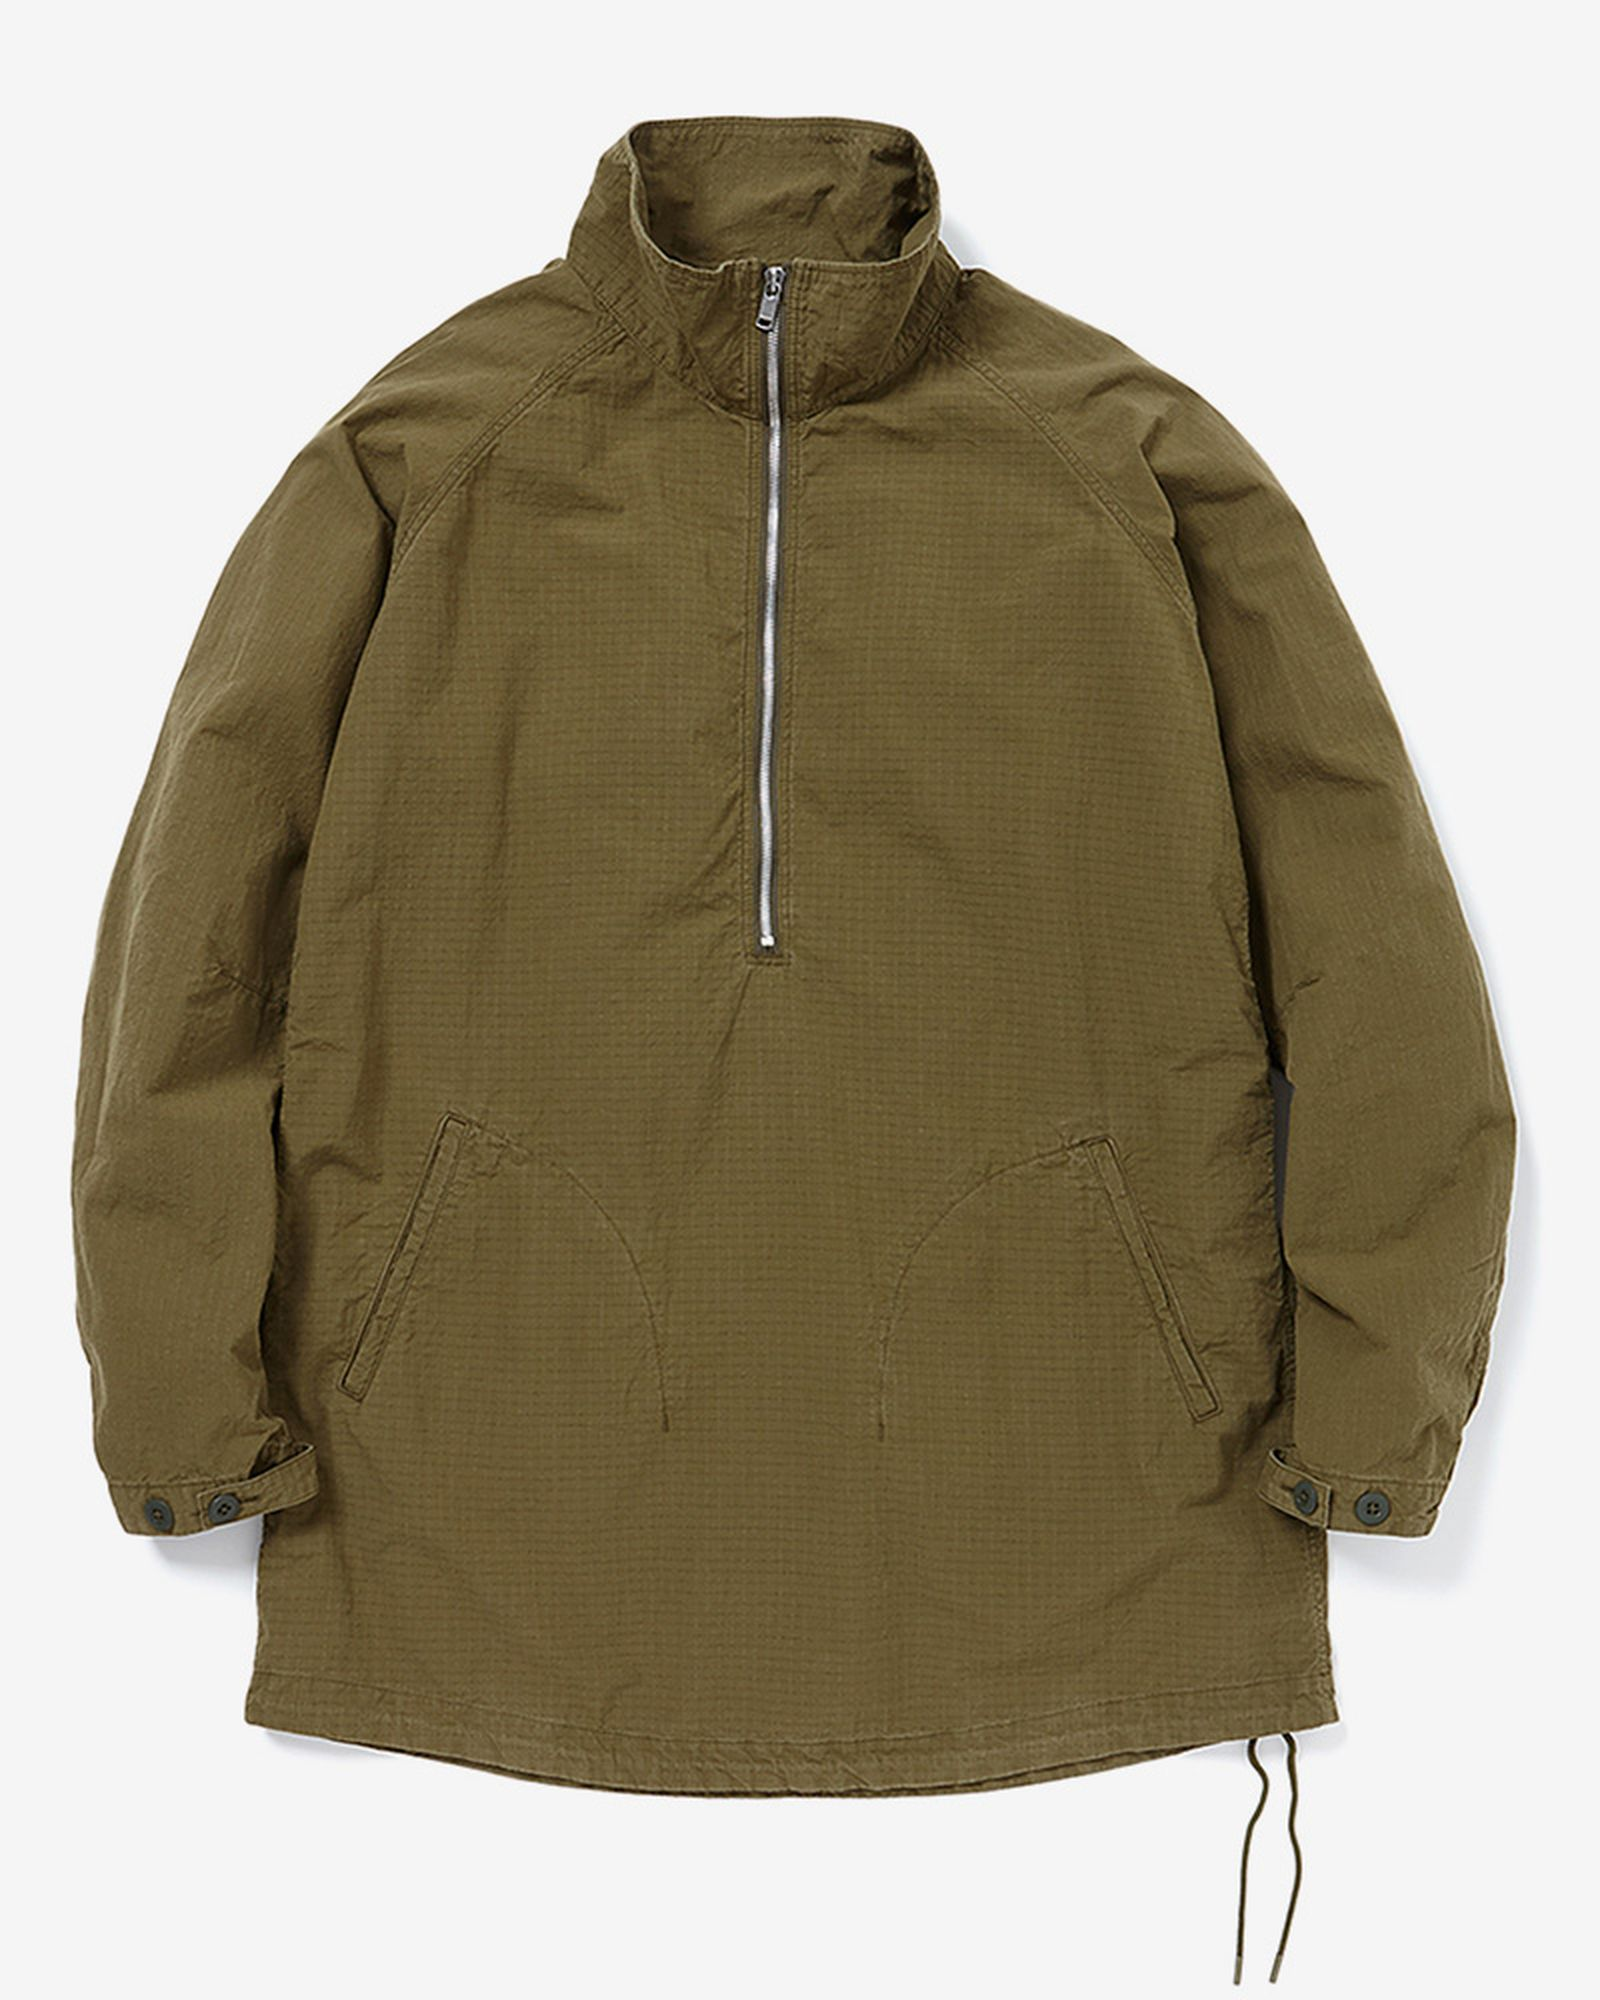 ippudo nonnative in house uniform collection